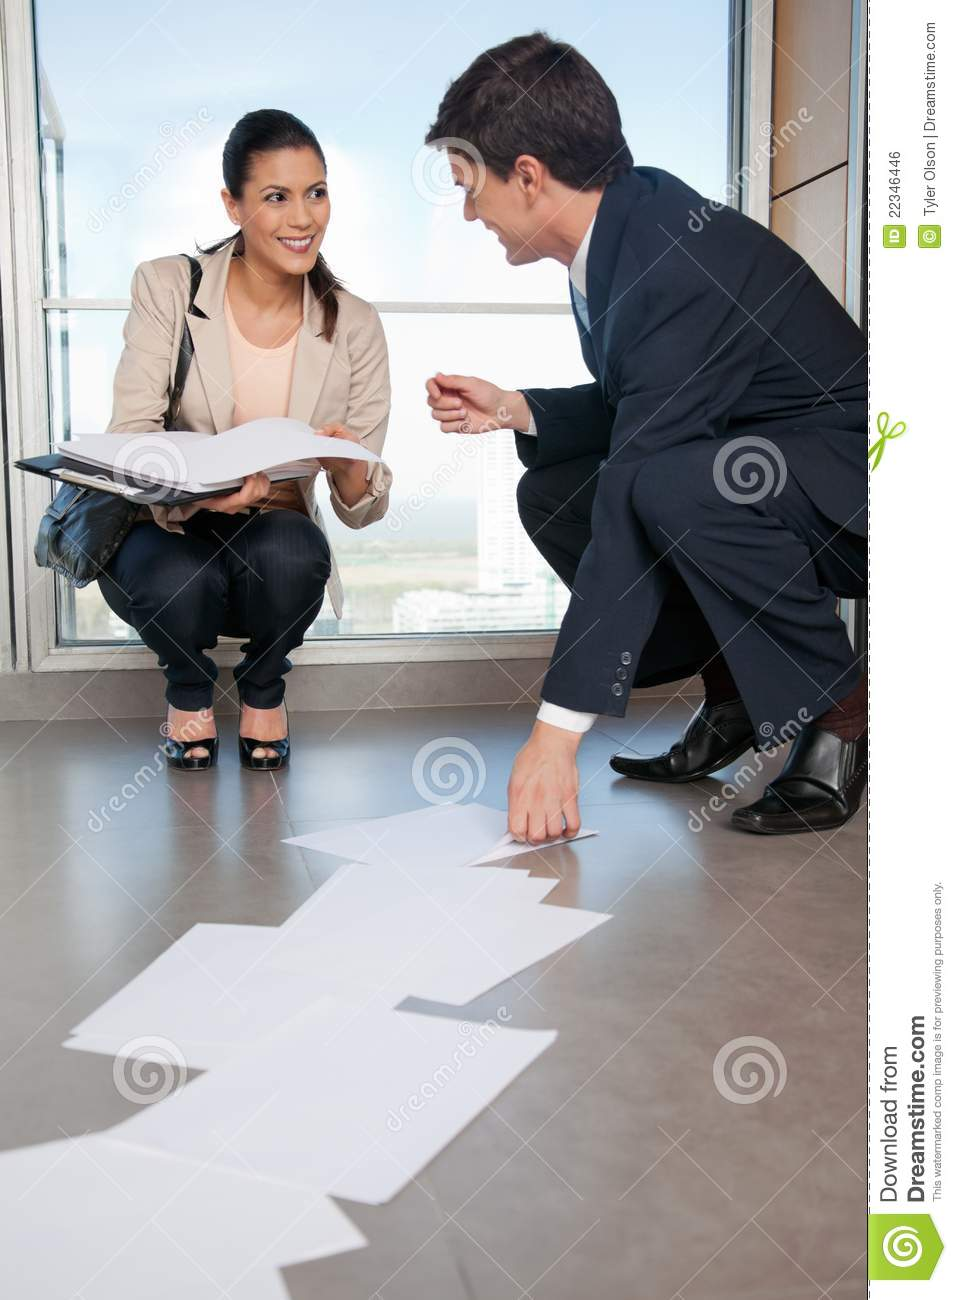 Man Helping Woman Collect Fallen Documents